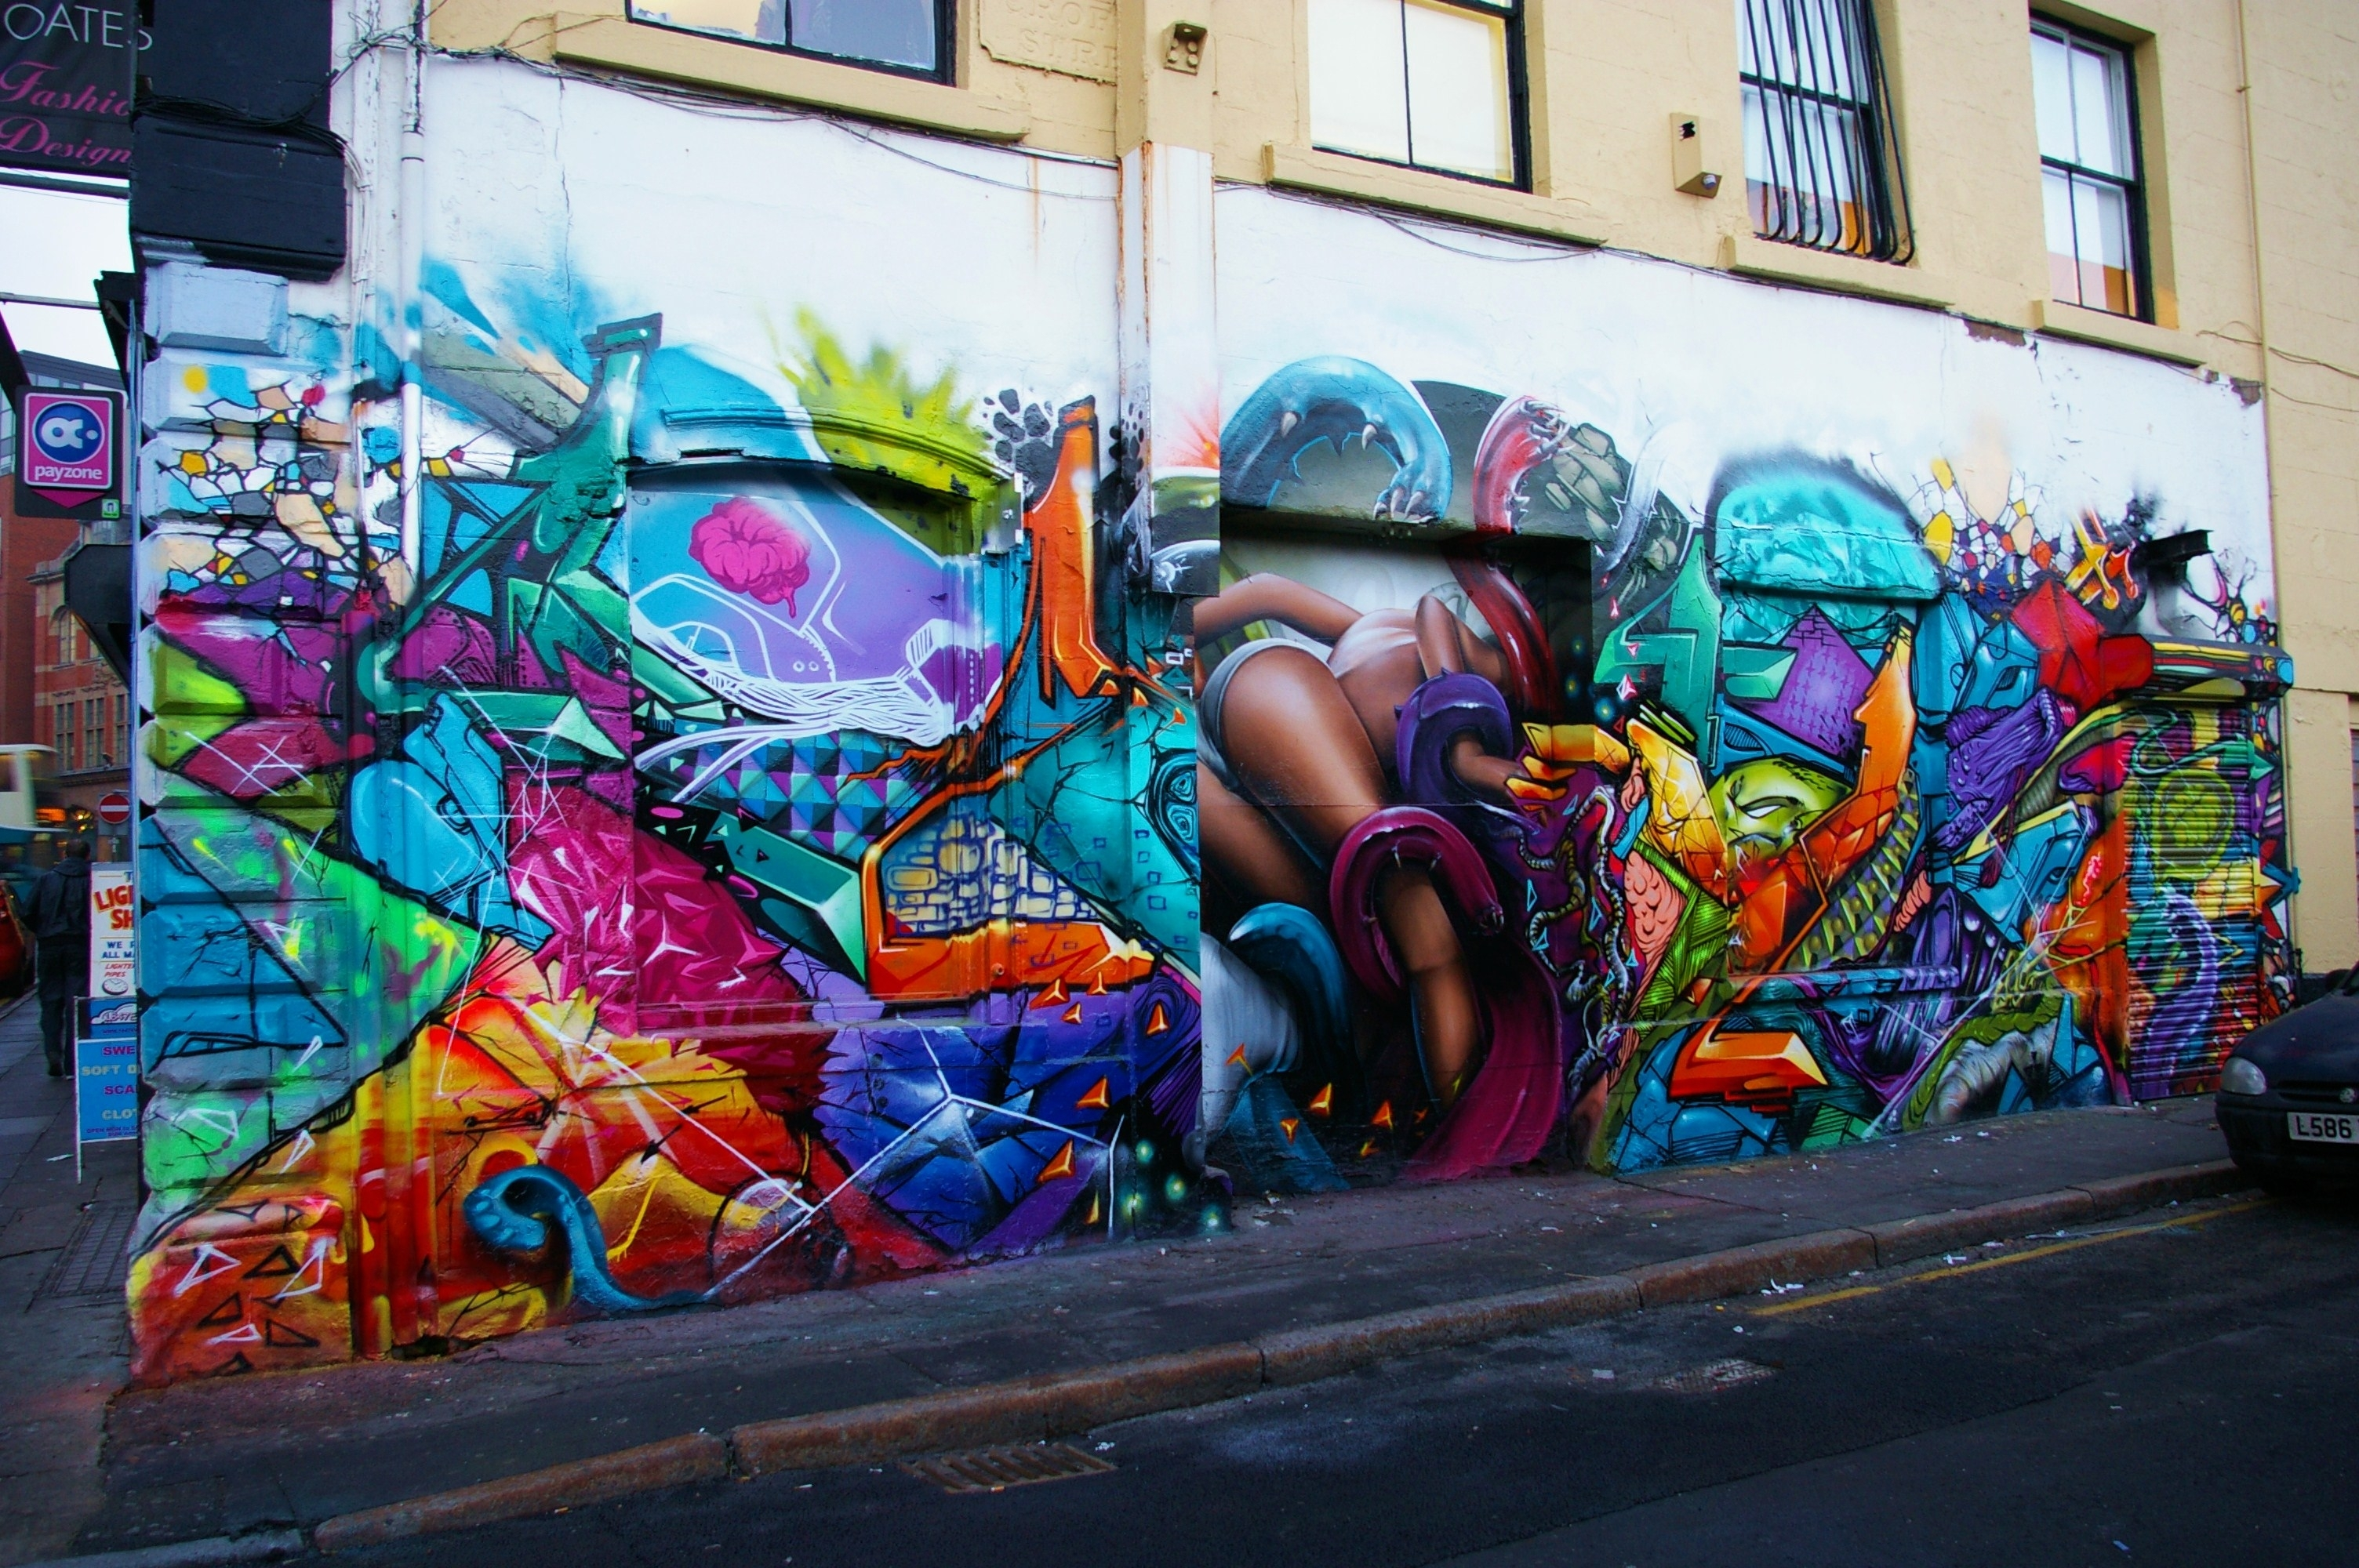 Walls For Artists – Zap Graffiti Liverpool Throughout Most Current Graffiti Wall Art (Gallery 18 of 20)